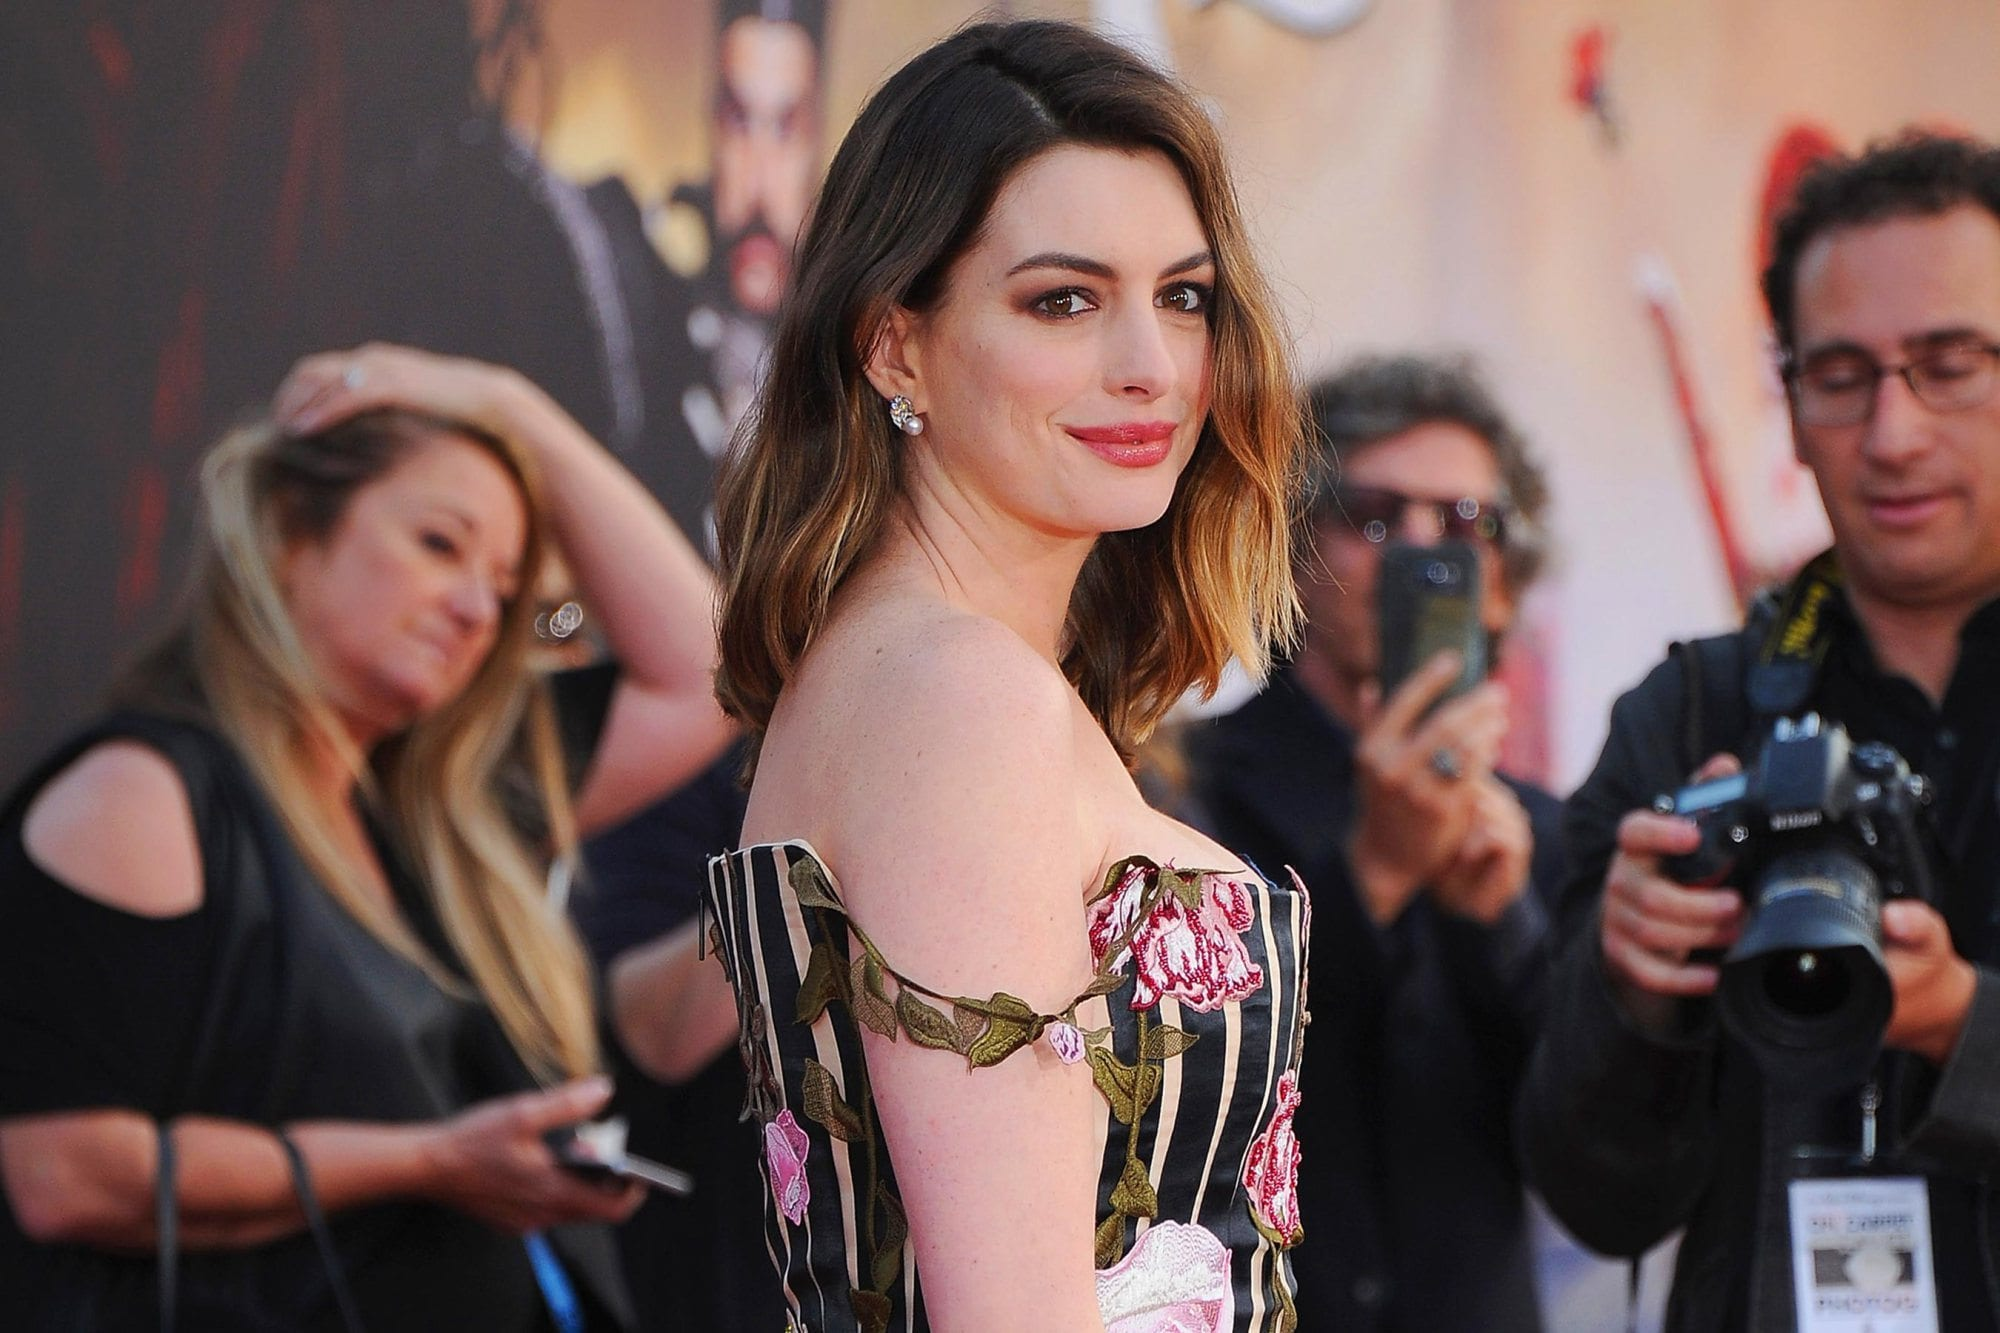 Sony's Barbie movie was due to drop on August 8, 2018. Be honest: You were counting down the days, weren't you? Well, we have some bad news – you'll have a while to wait before seeing Anne Hathaway (Les Misérables) transform into a Barbie girl in a Barbie world.